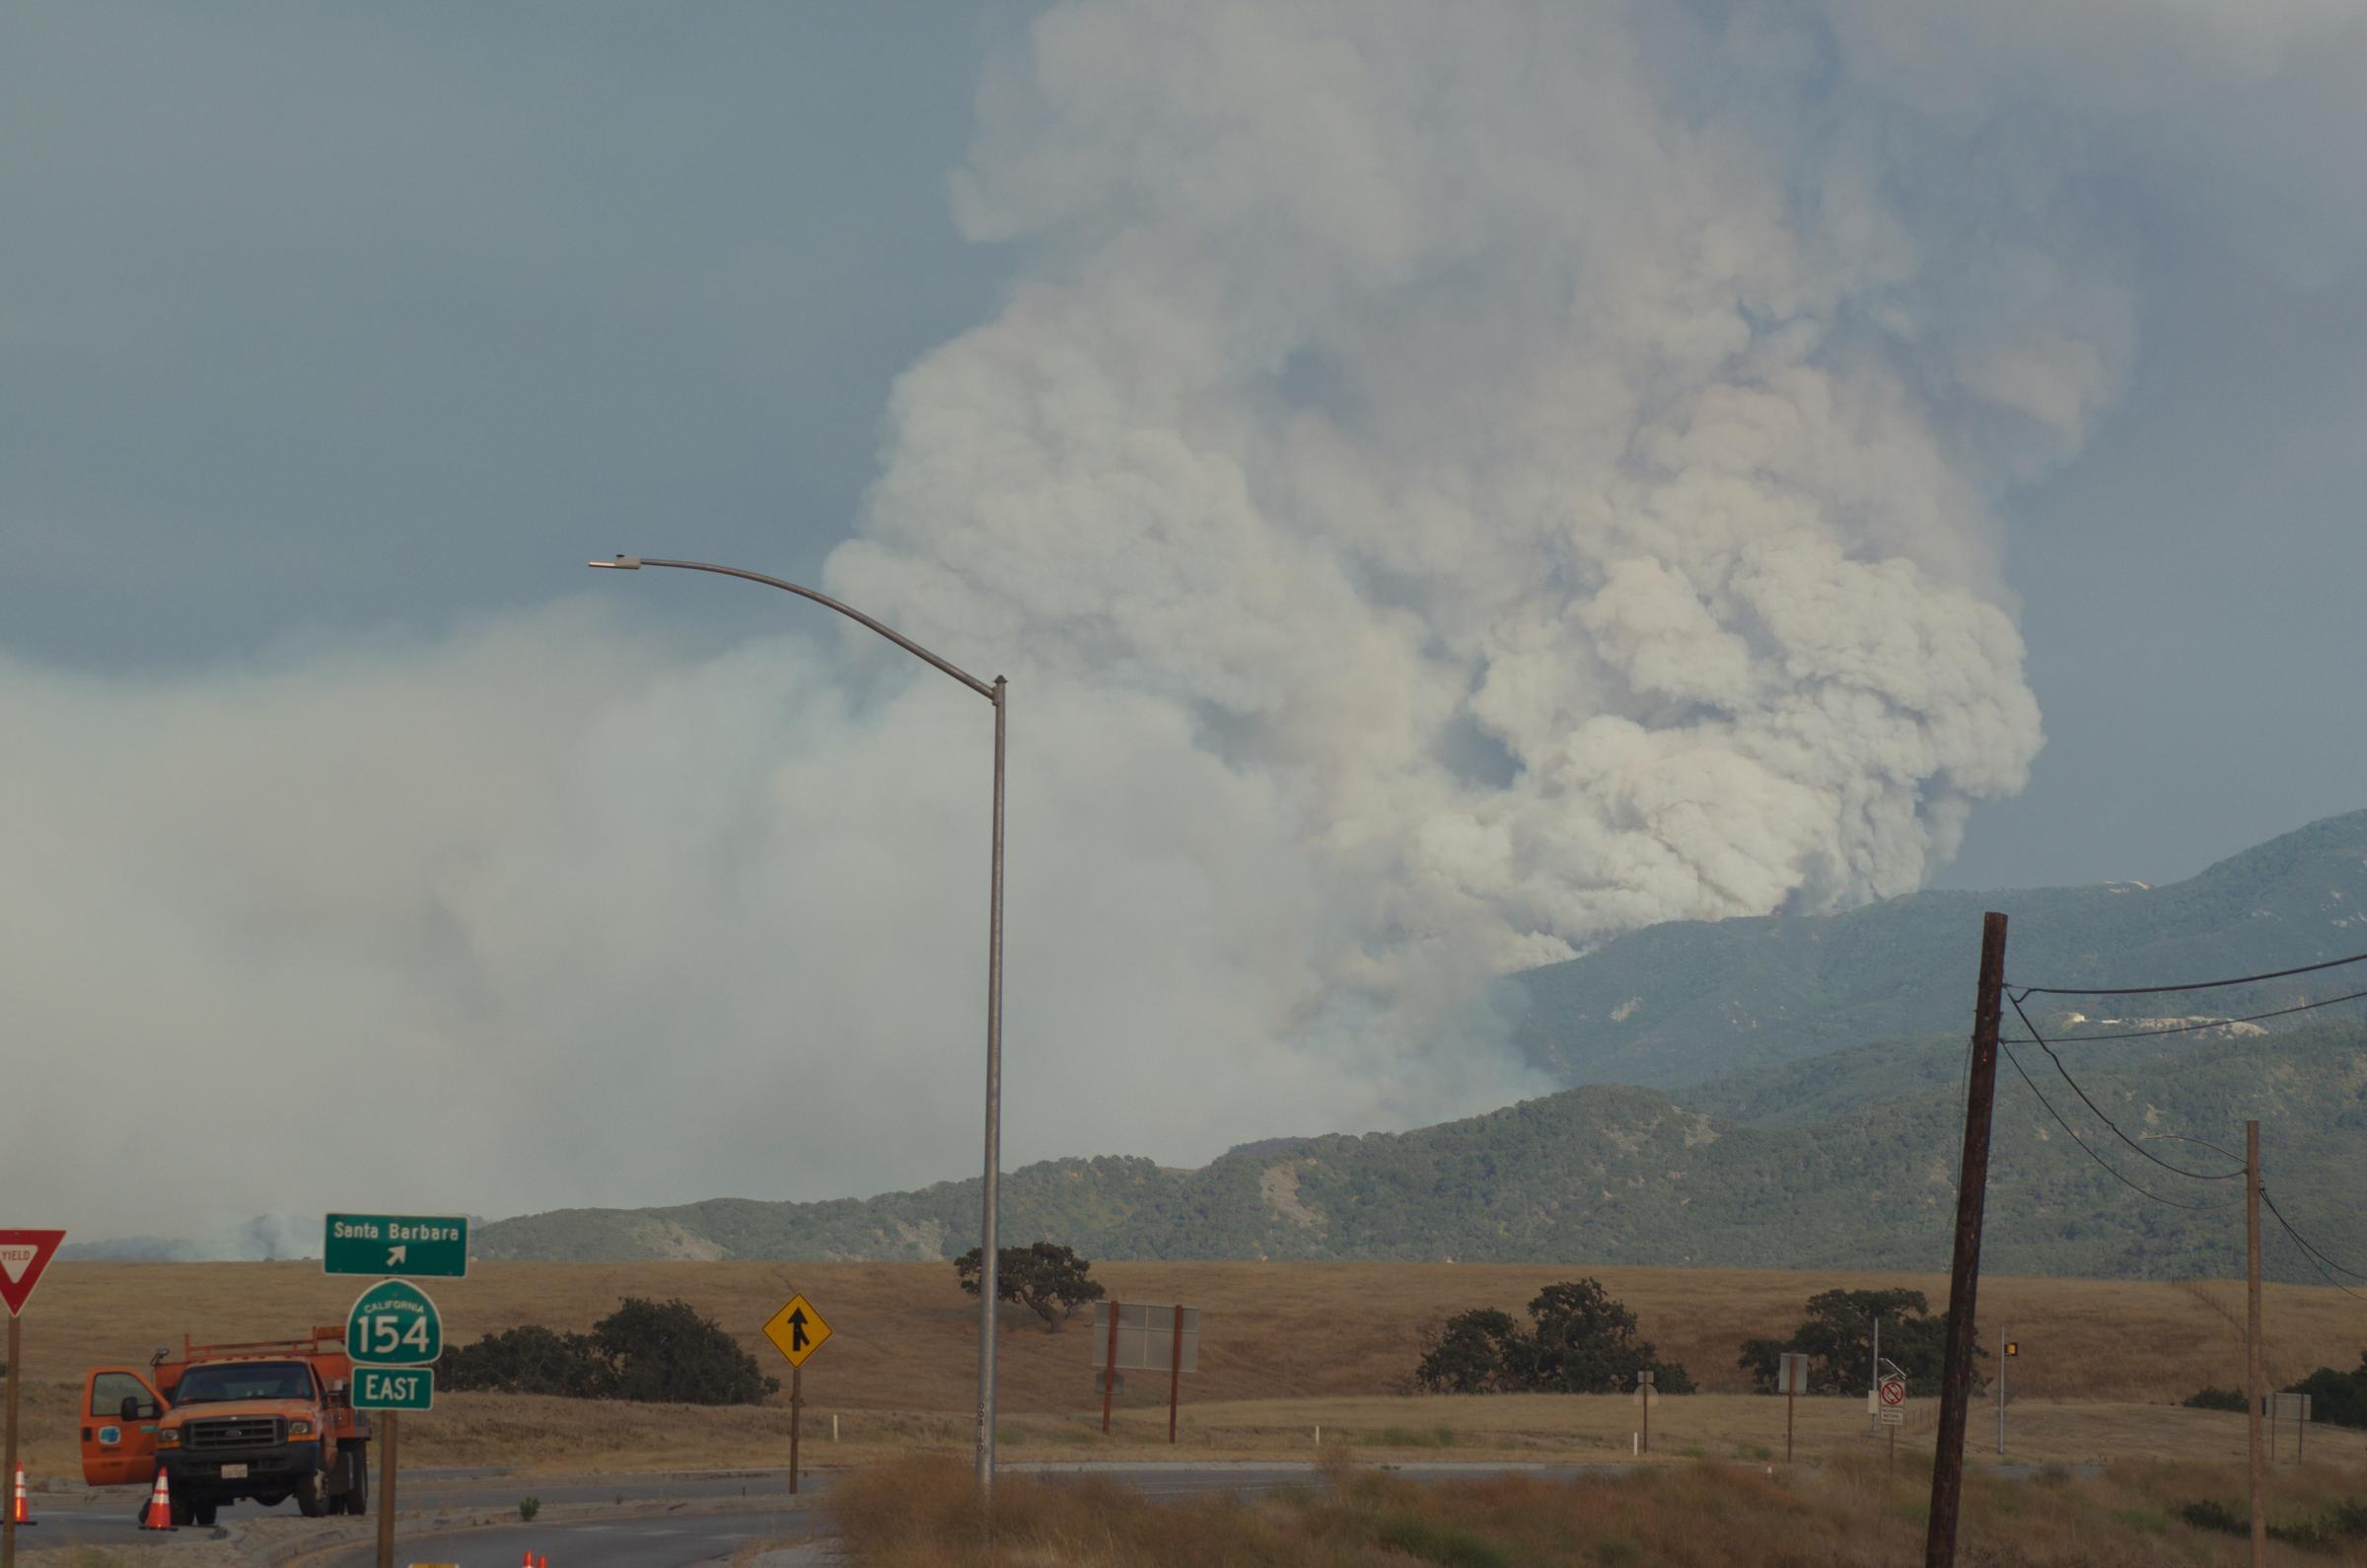 Alamo fire explodes to 3000 acres; mandatory evacuations ordered, shelter opened